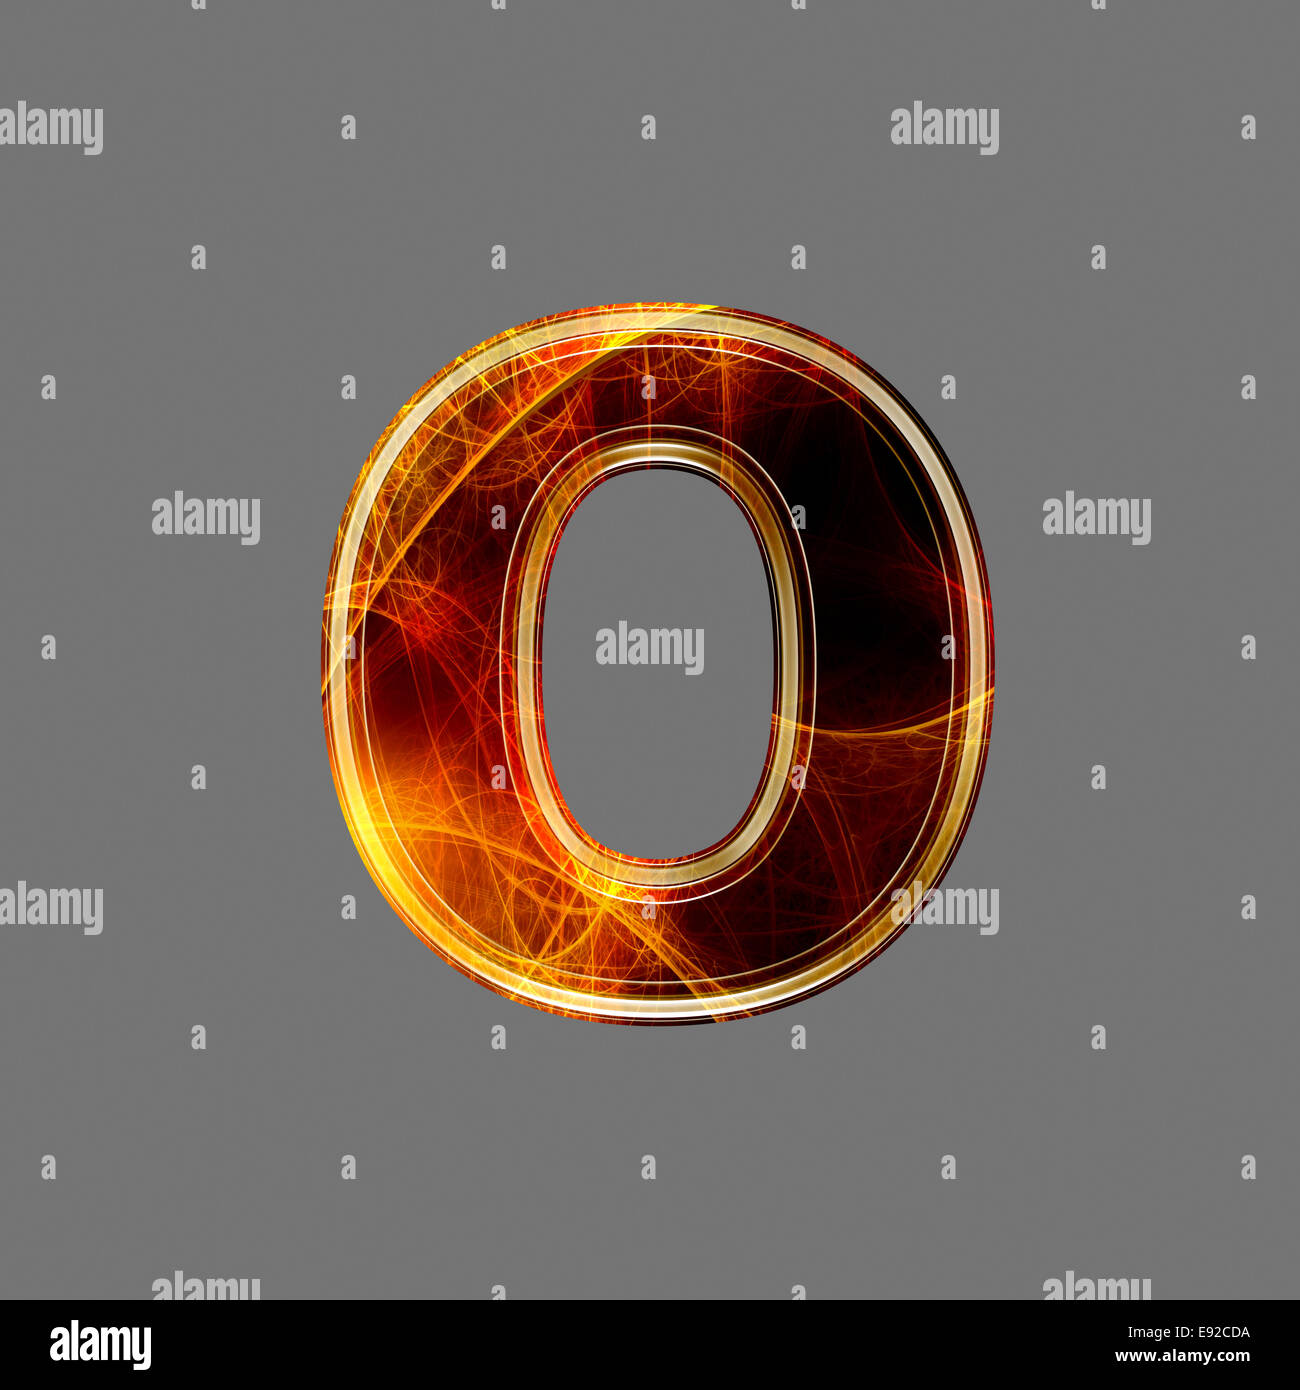 3d abstract and futuristic letter o stock photo royalty free 3d abstract and futuristic letter o biocorpaavc